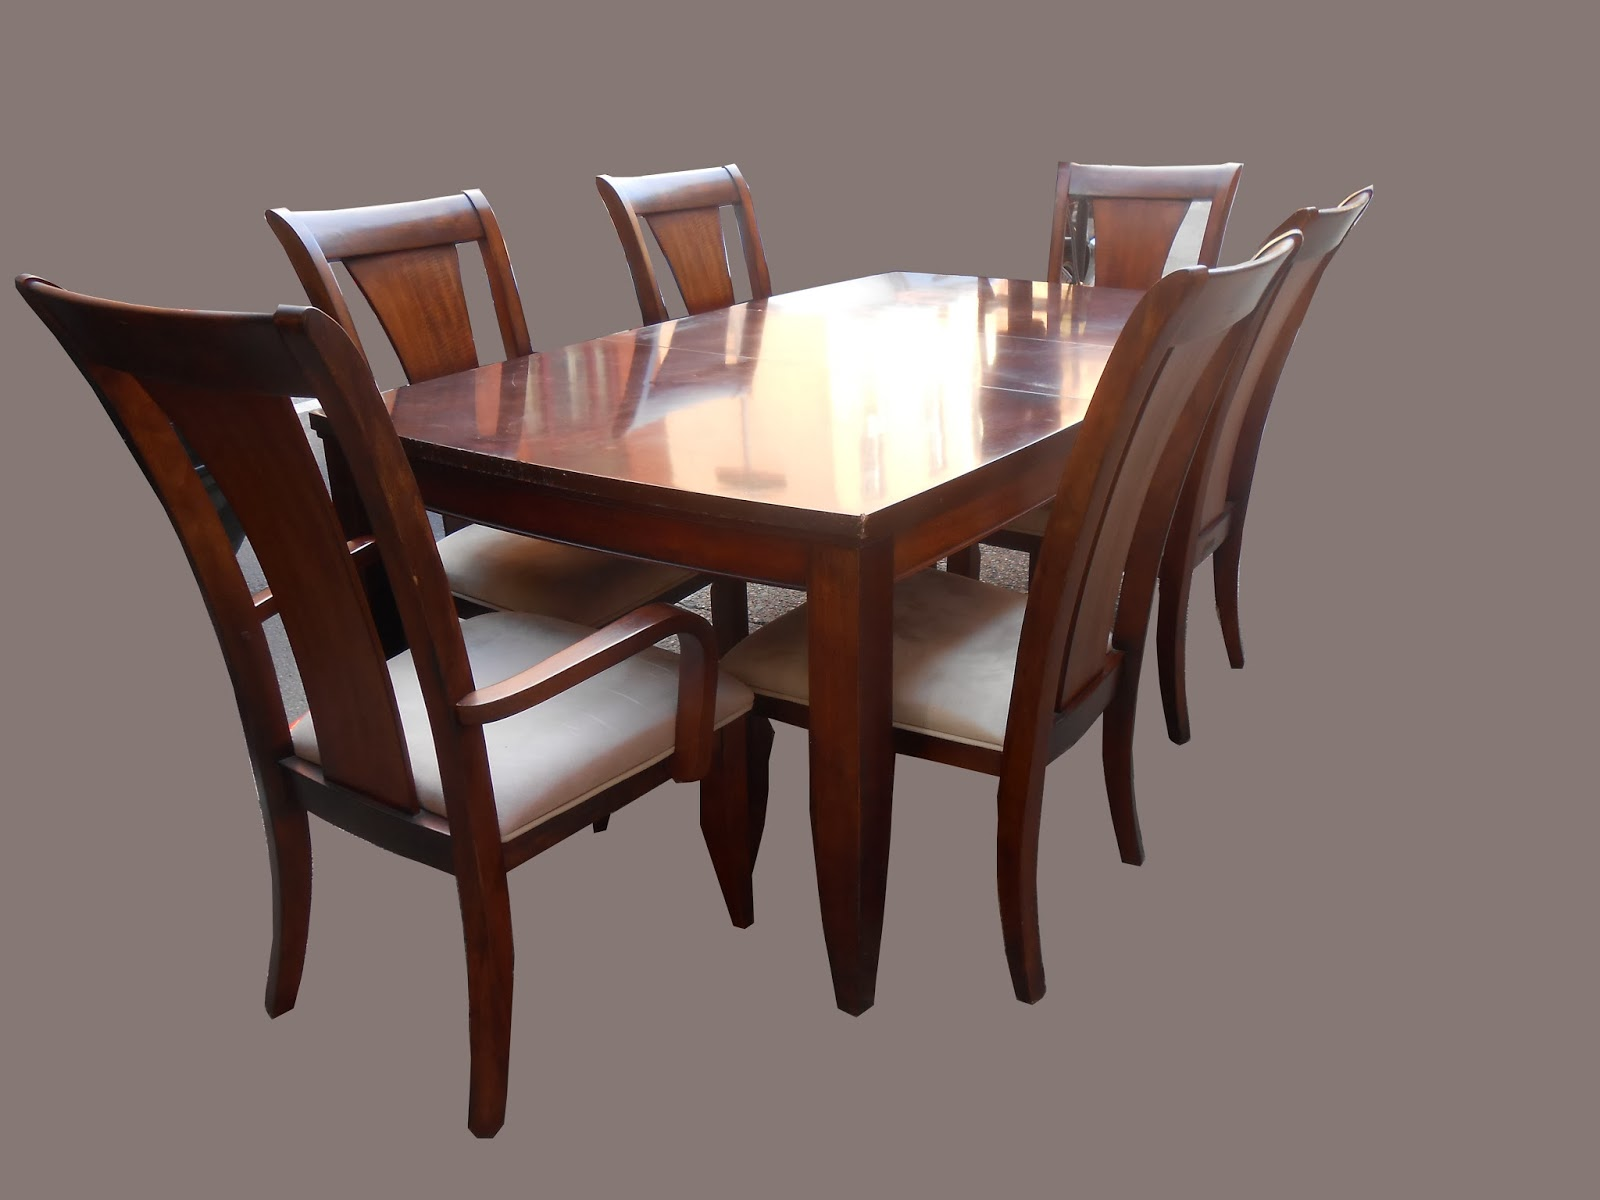 6 chair dining table best chairs for reading uhuru furniture and collectibles mahogany w